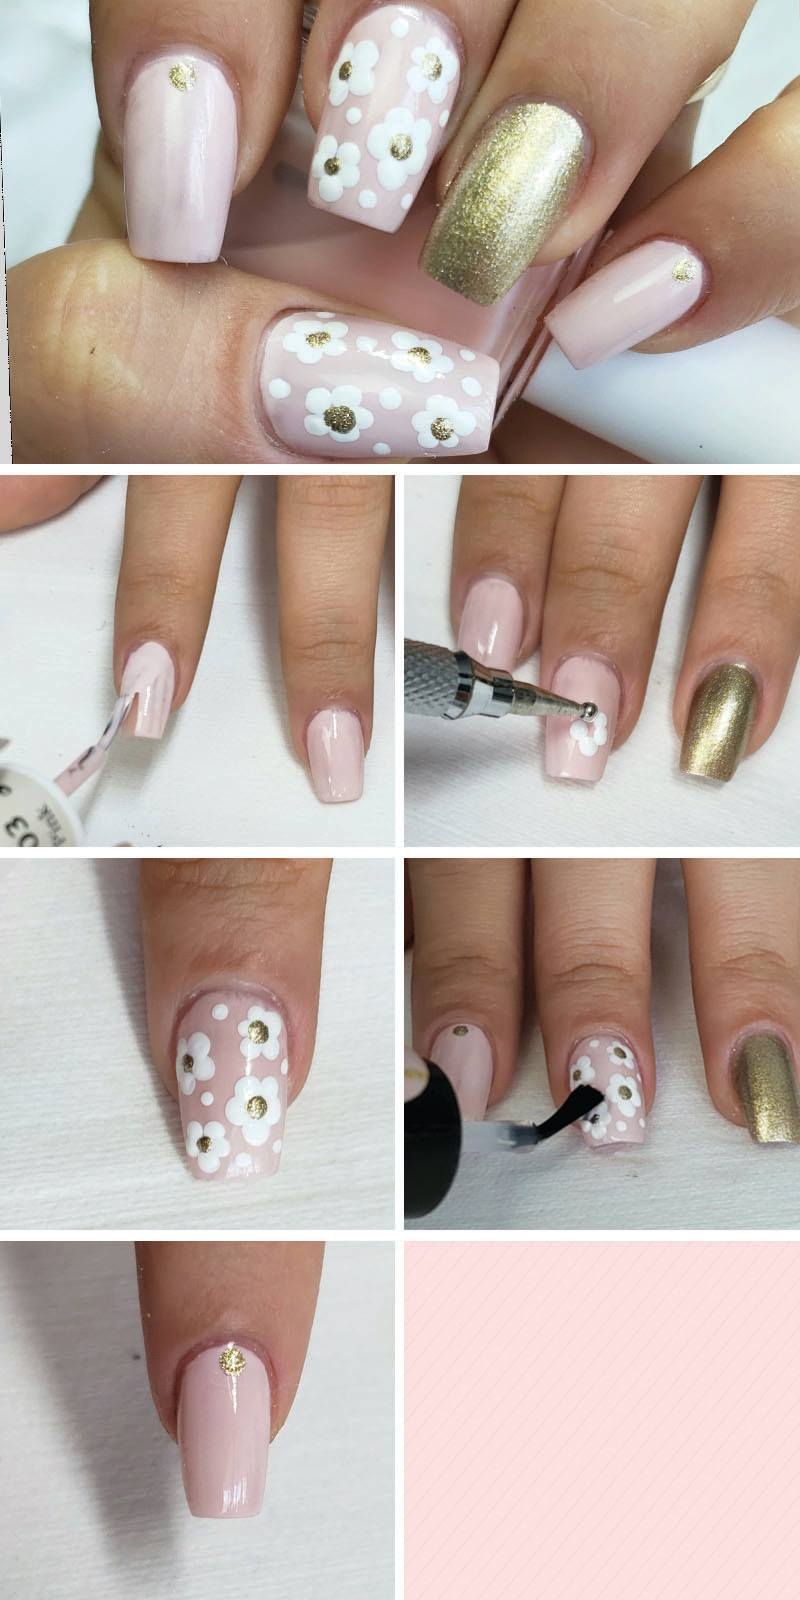 How to Do Nail Art? , 6 Easy Tutorials to Do at Home , All